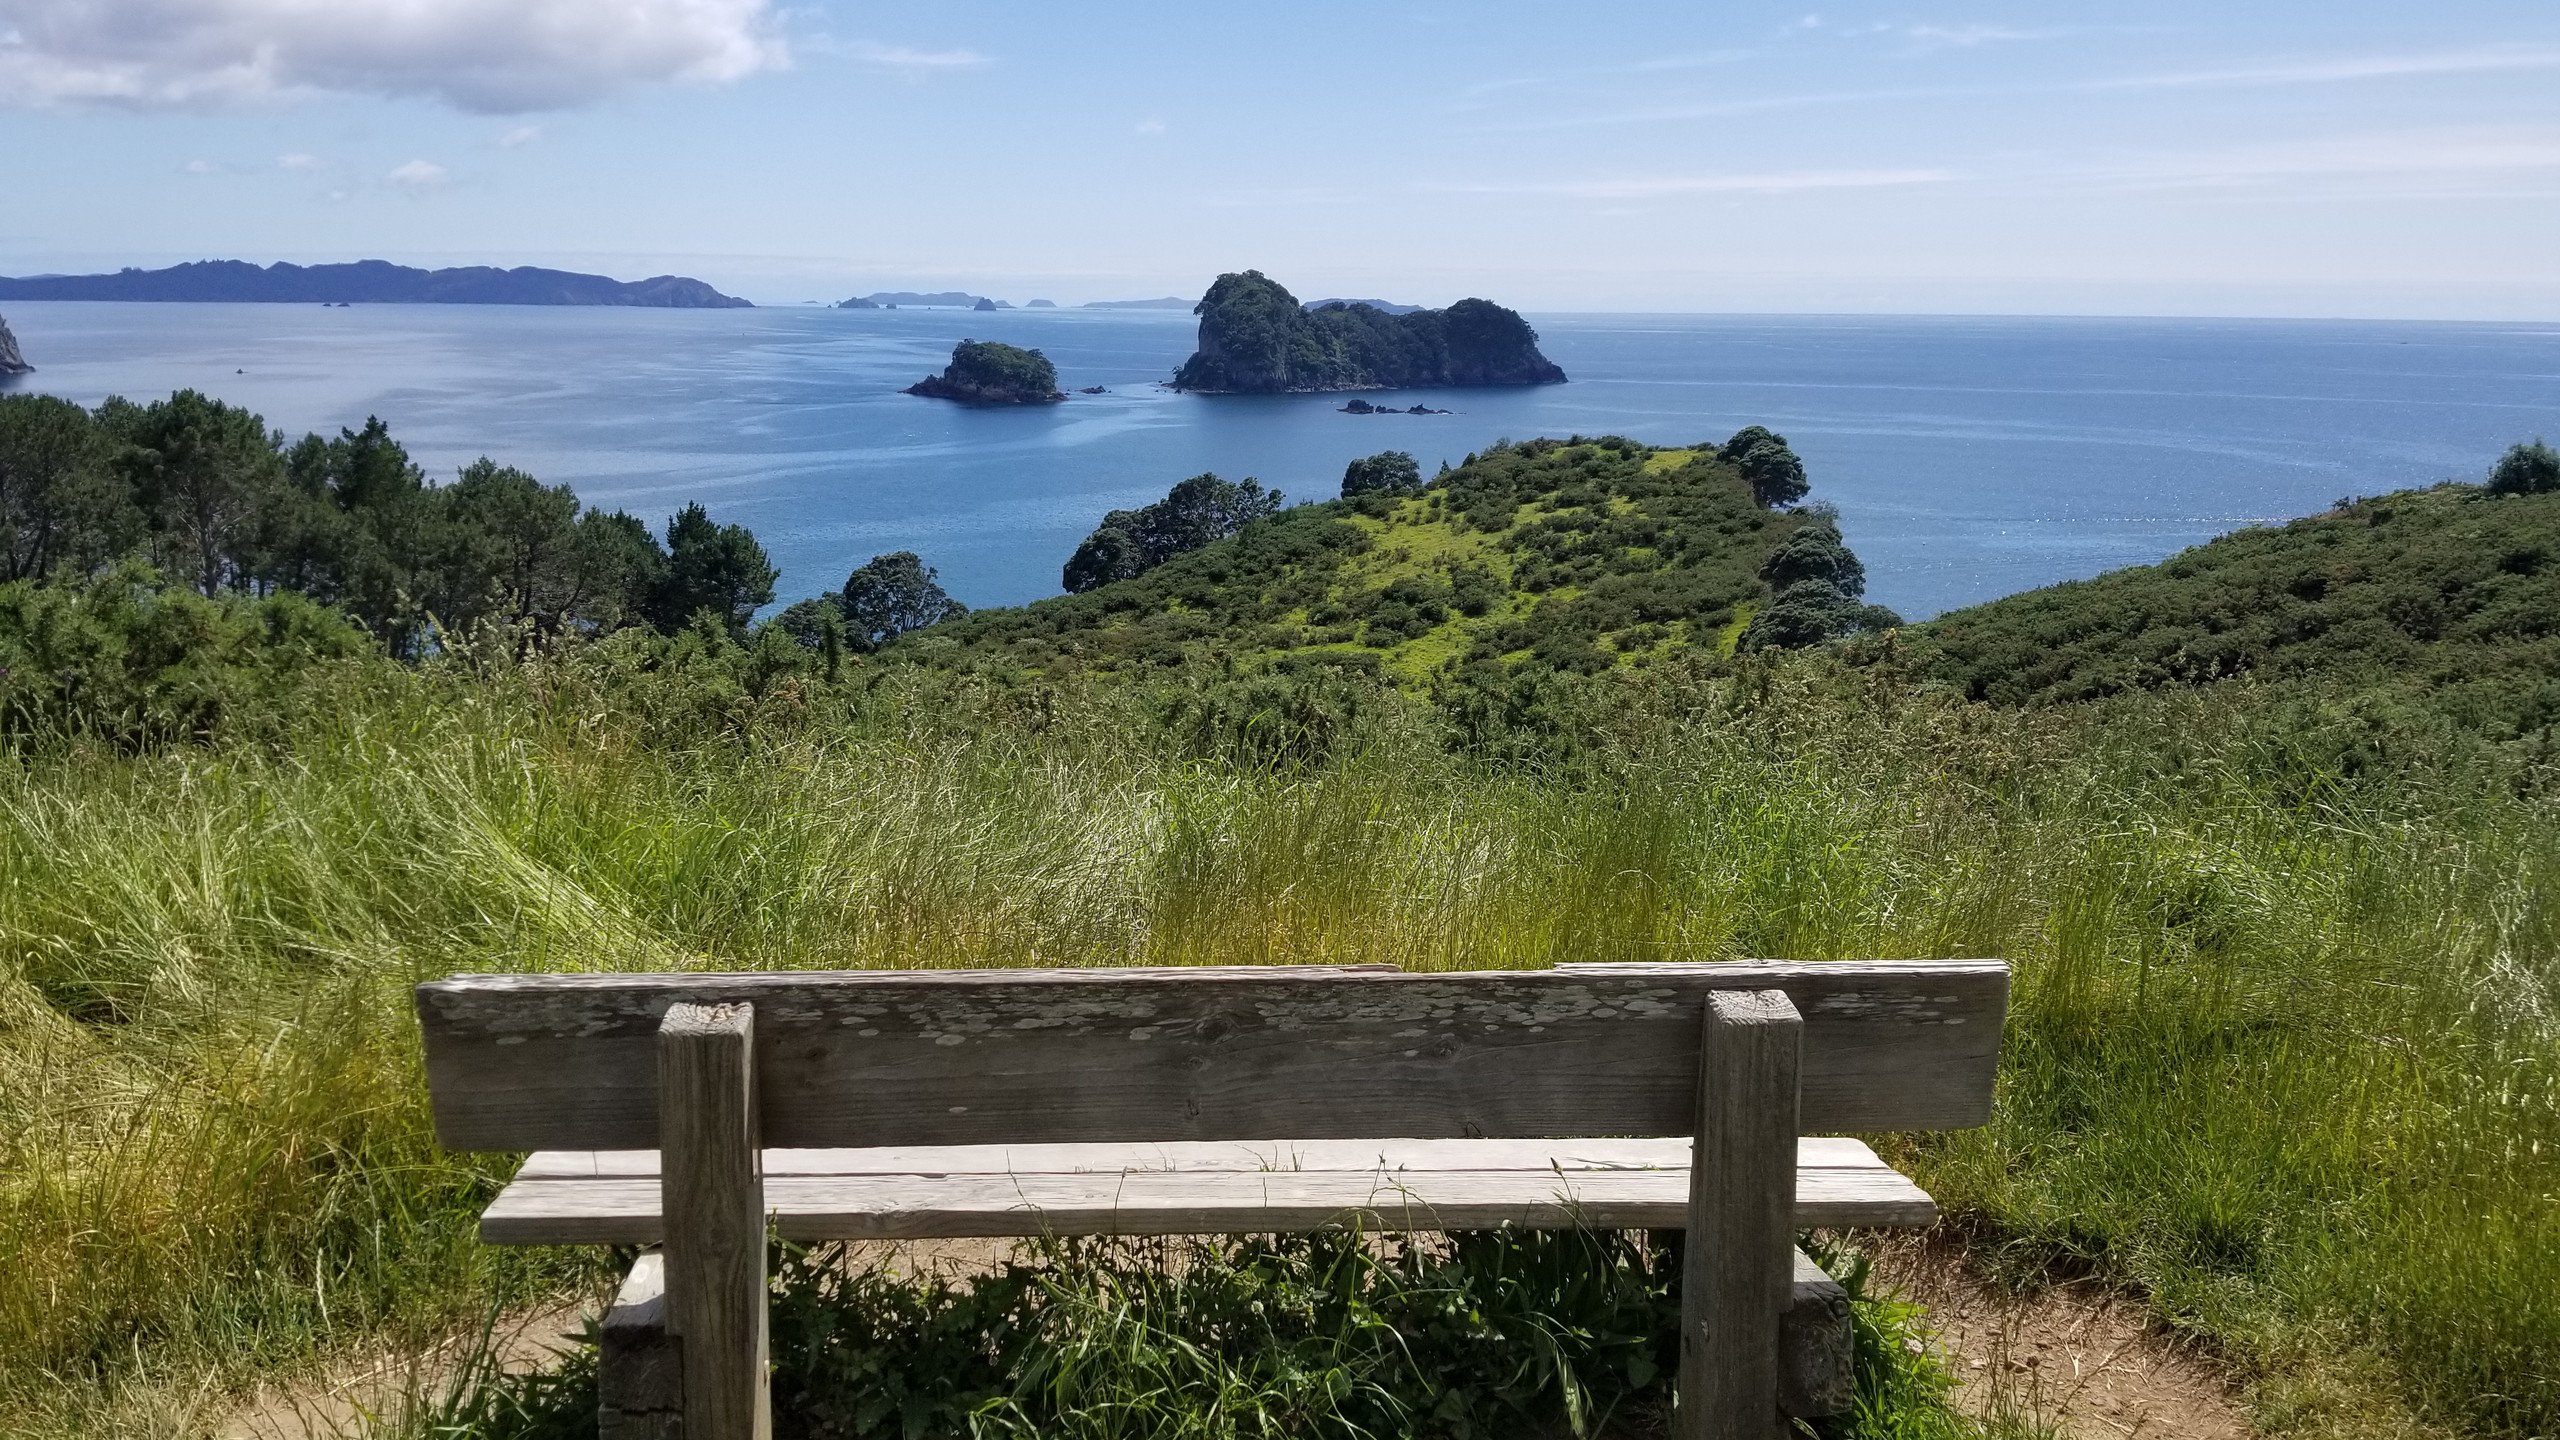 Coromandel peninsula New Zealand. New Zealand attractions, New Zealand activities